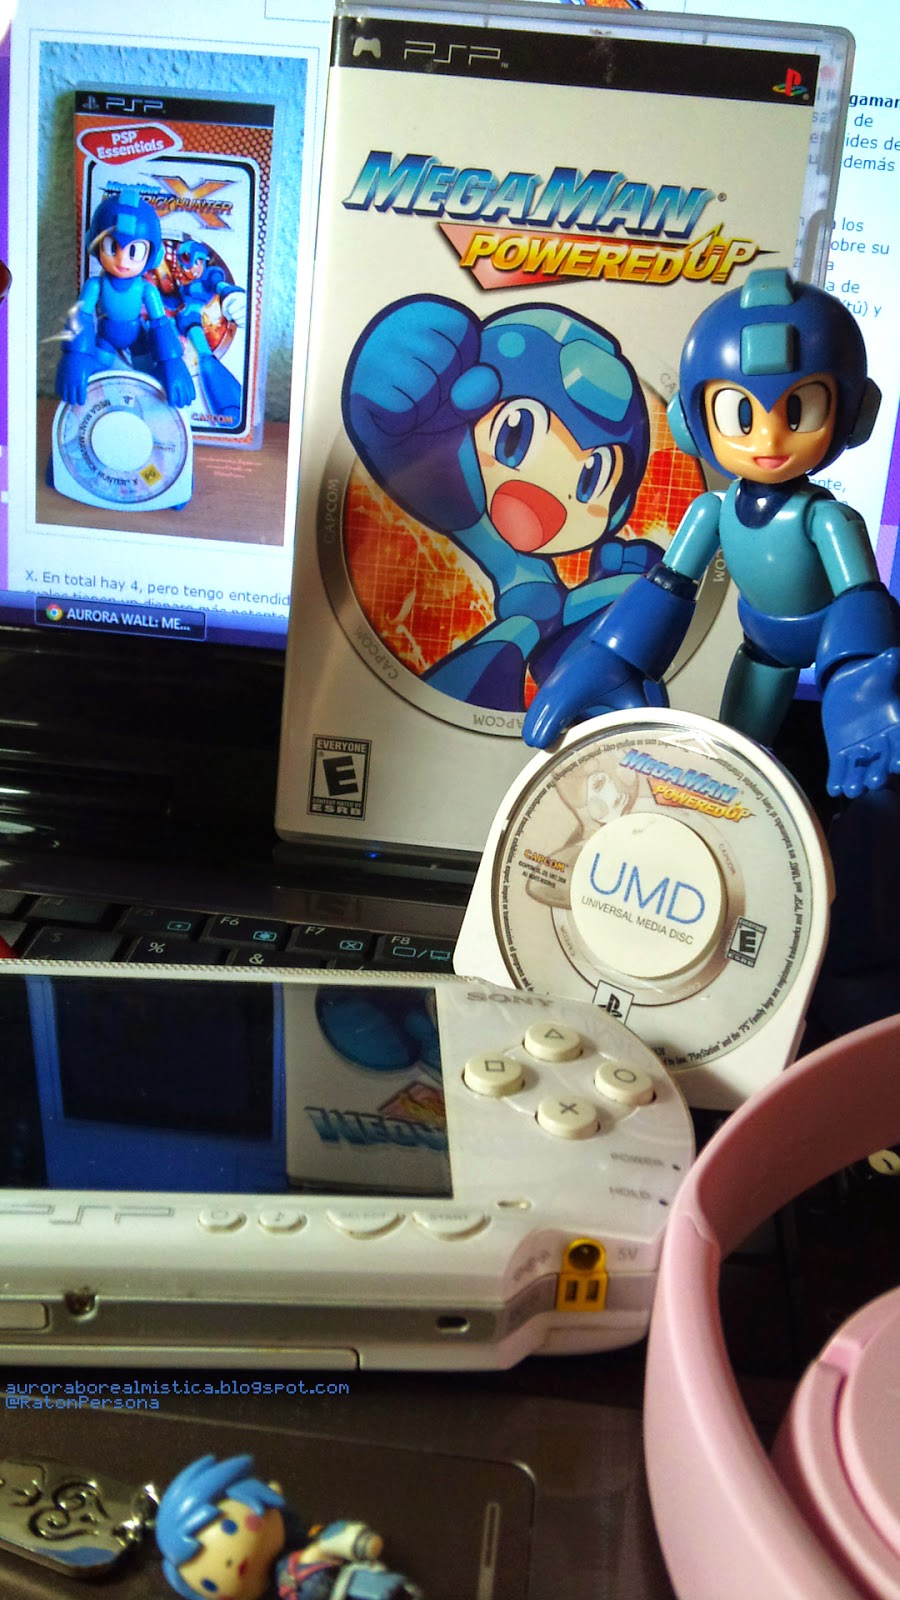 AURORA WALL: MEGAMAN Powered Up -PSP review-